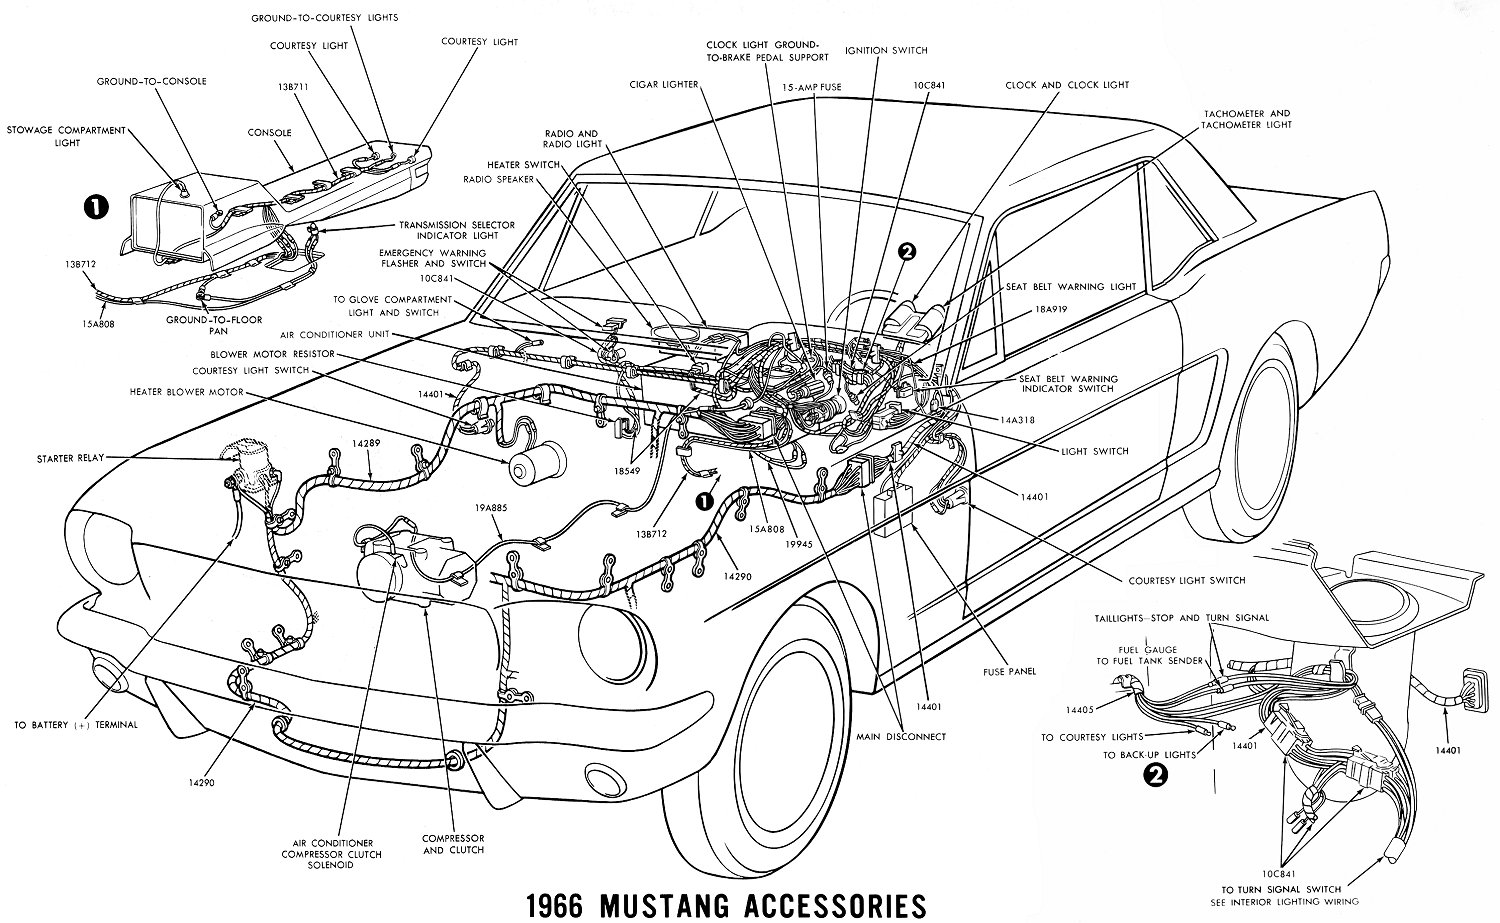 1966 Mustang Wiring Diagrams on 1967 Mustang Instrument Cluster Wiring Diagram